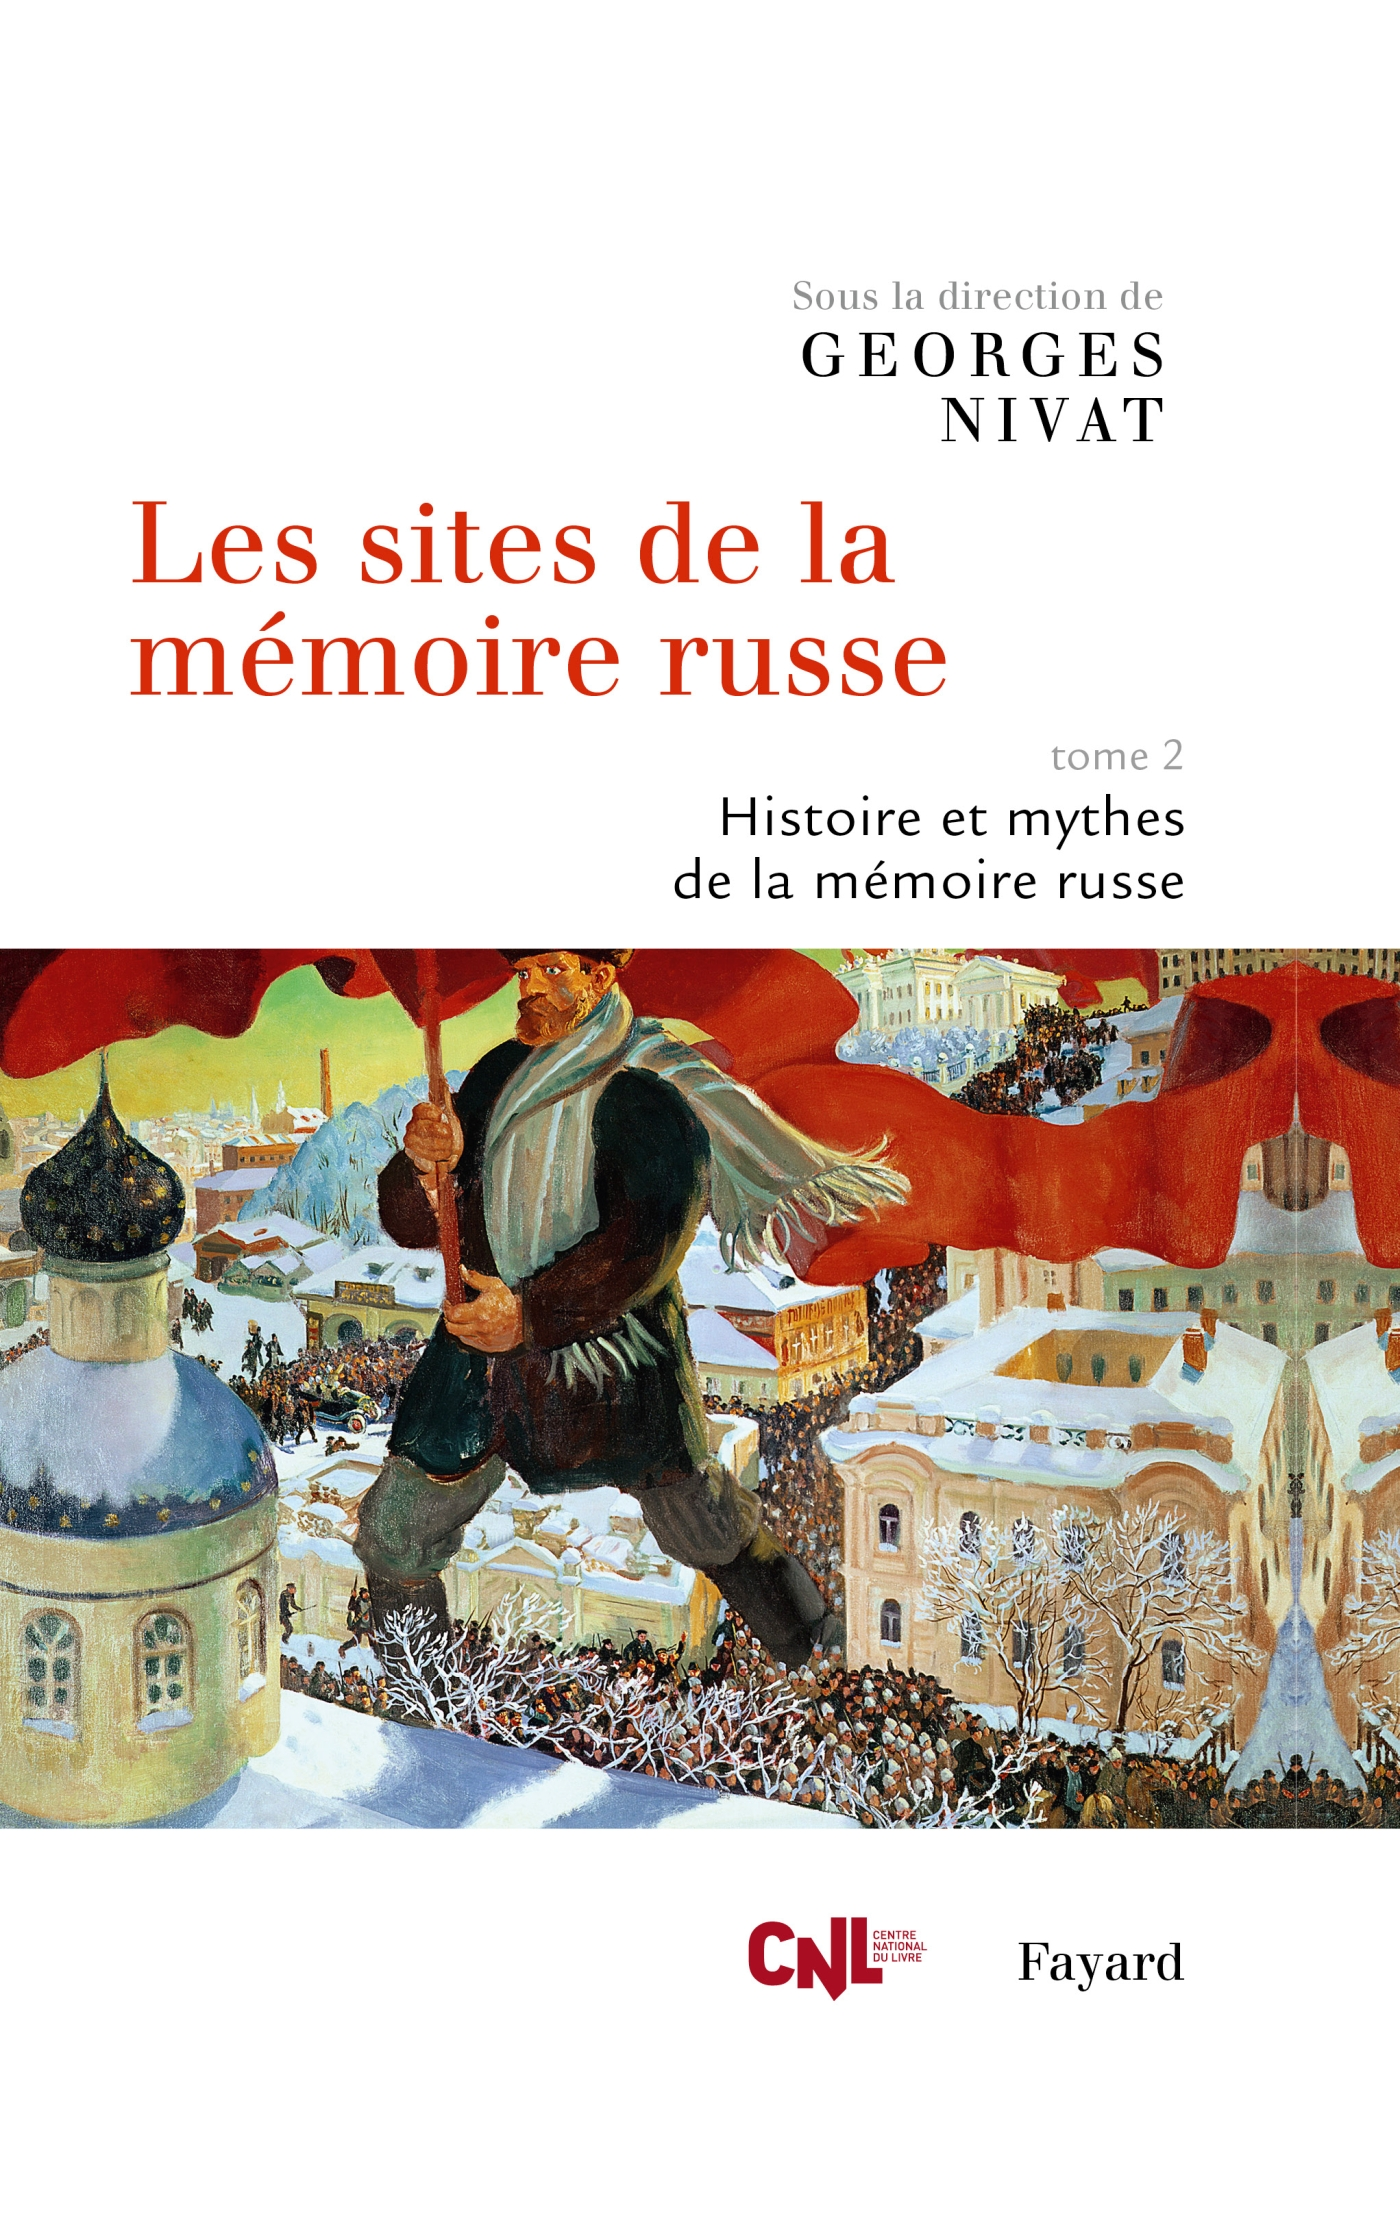 Les sites de la mémoire russe, tome 2